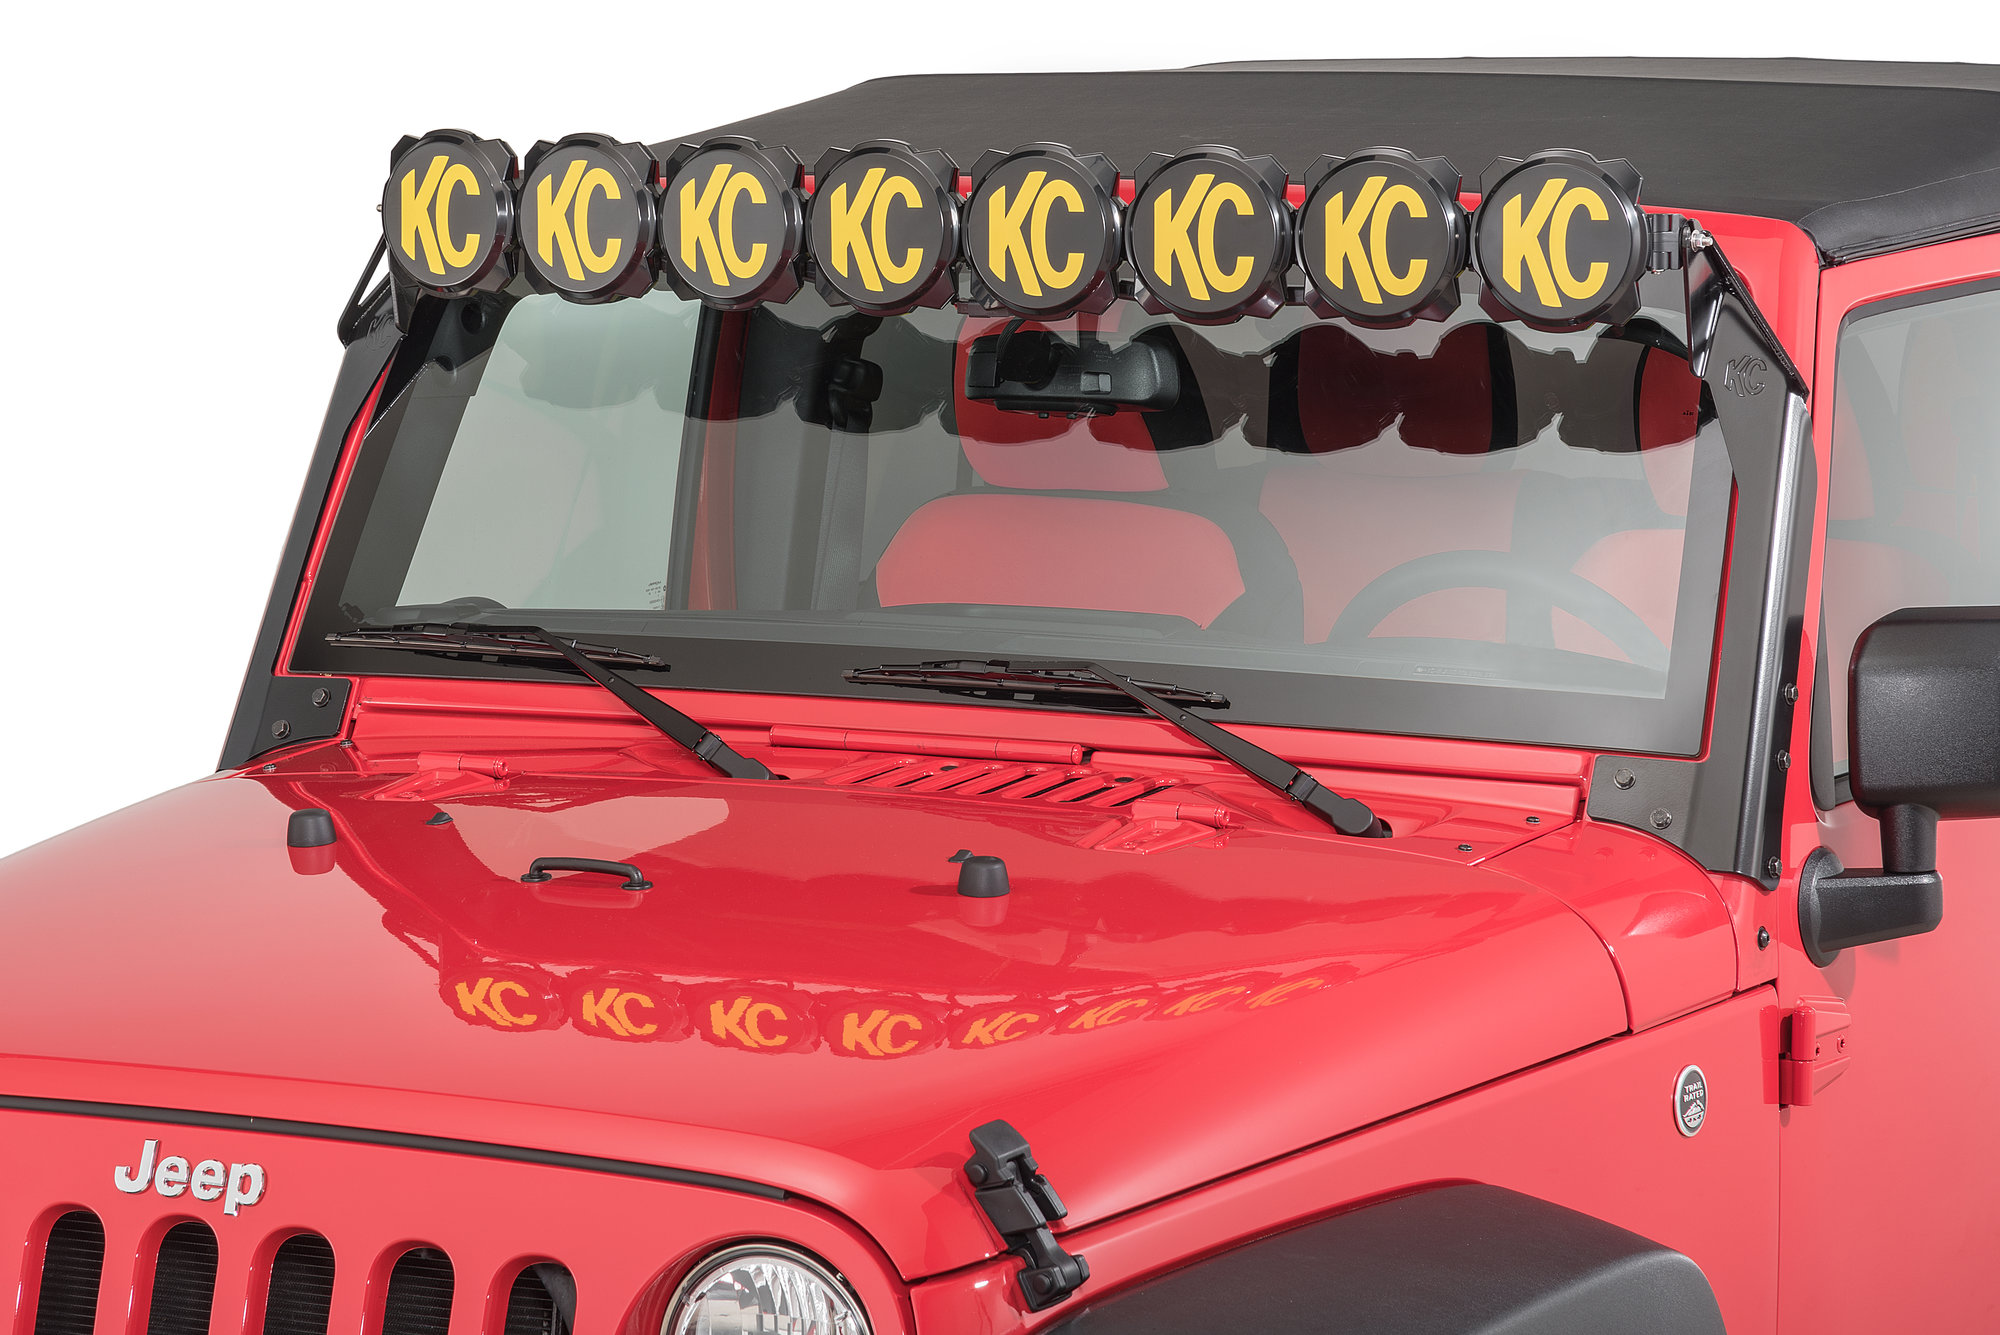 hight resolution of kc hilites 91313 gravity pro6 led light bar for 07 18 jeep wranglerkc hilites 91313 gravity